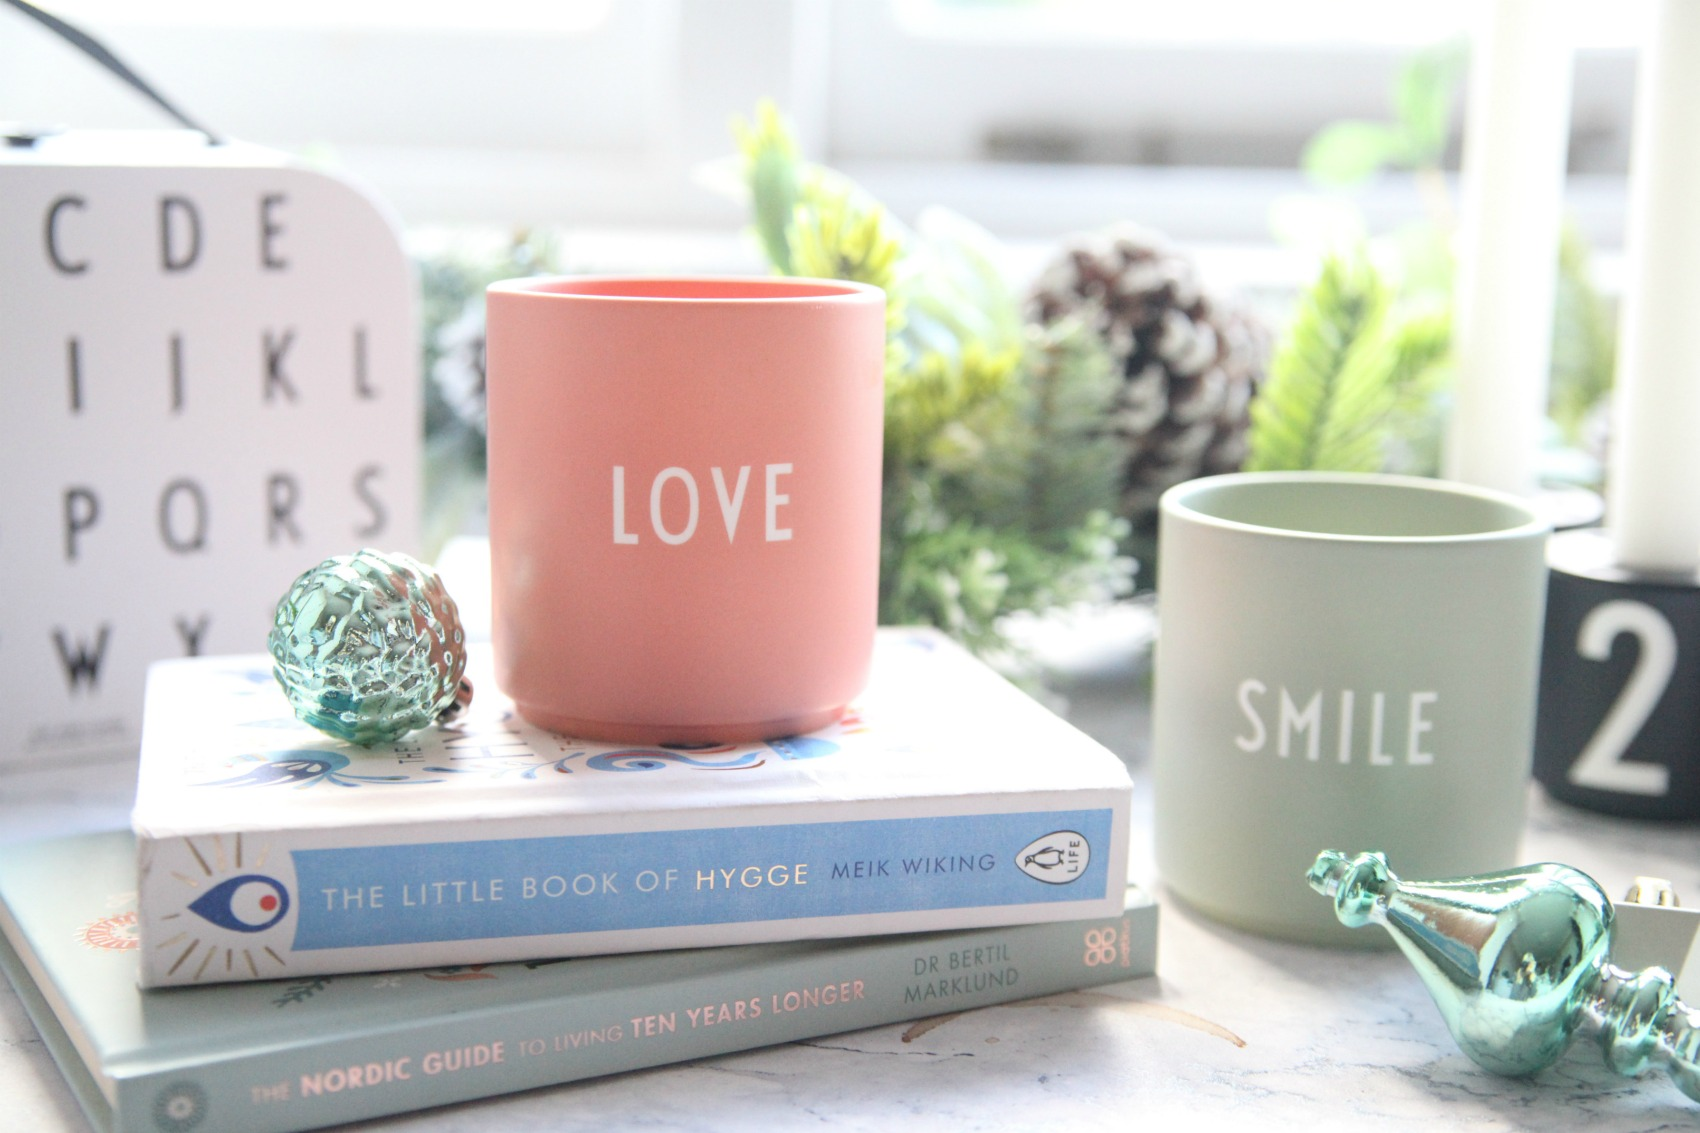 Love and Smile mugs from Design Letters